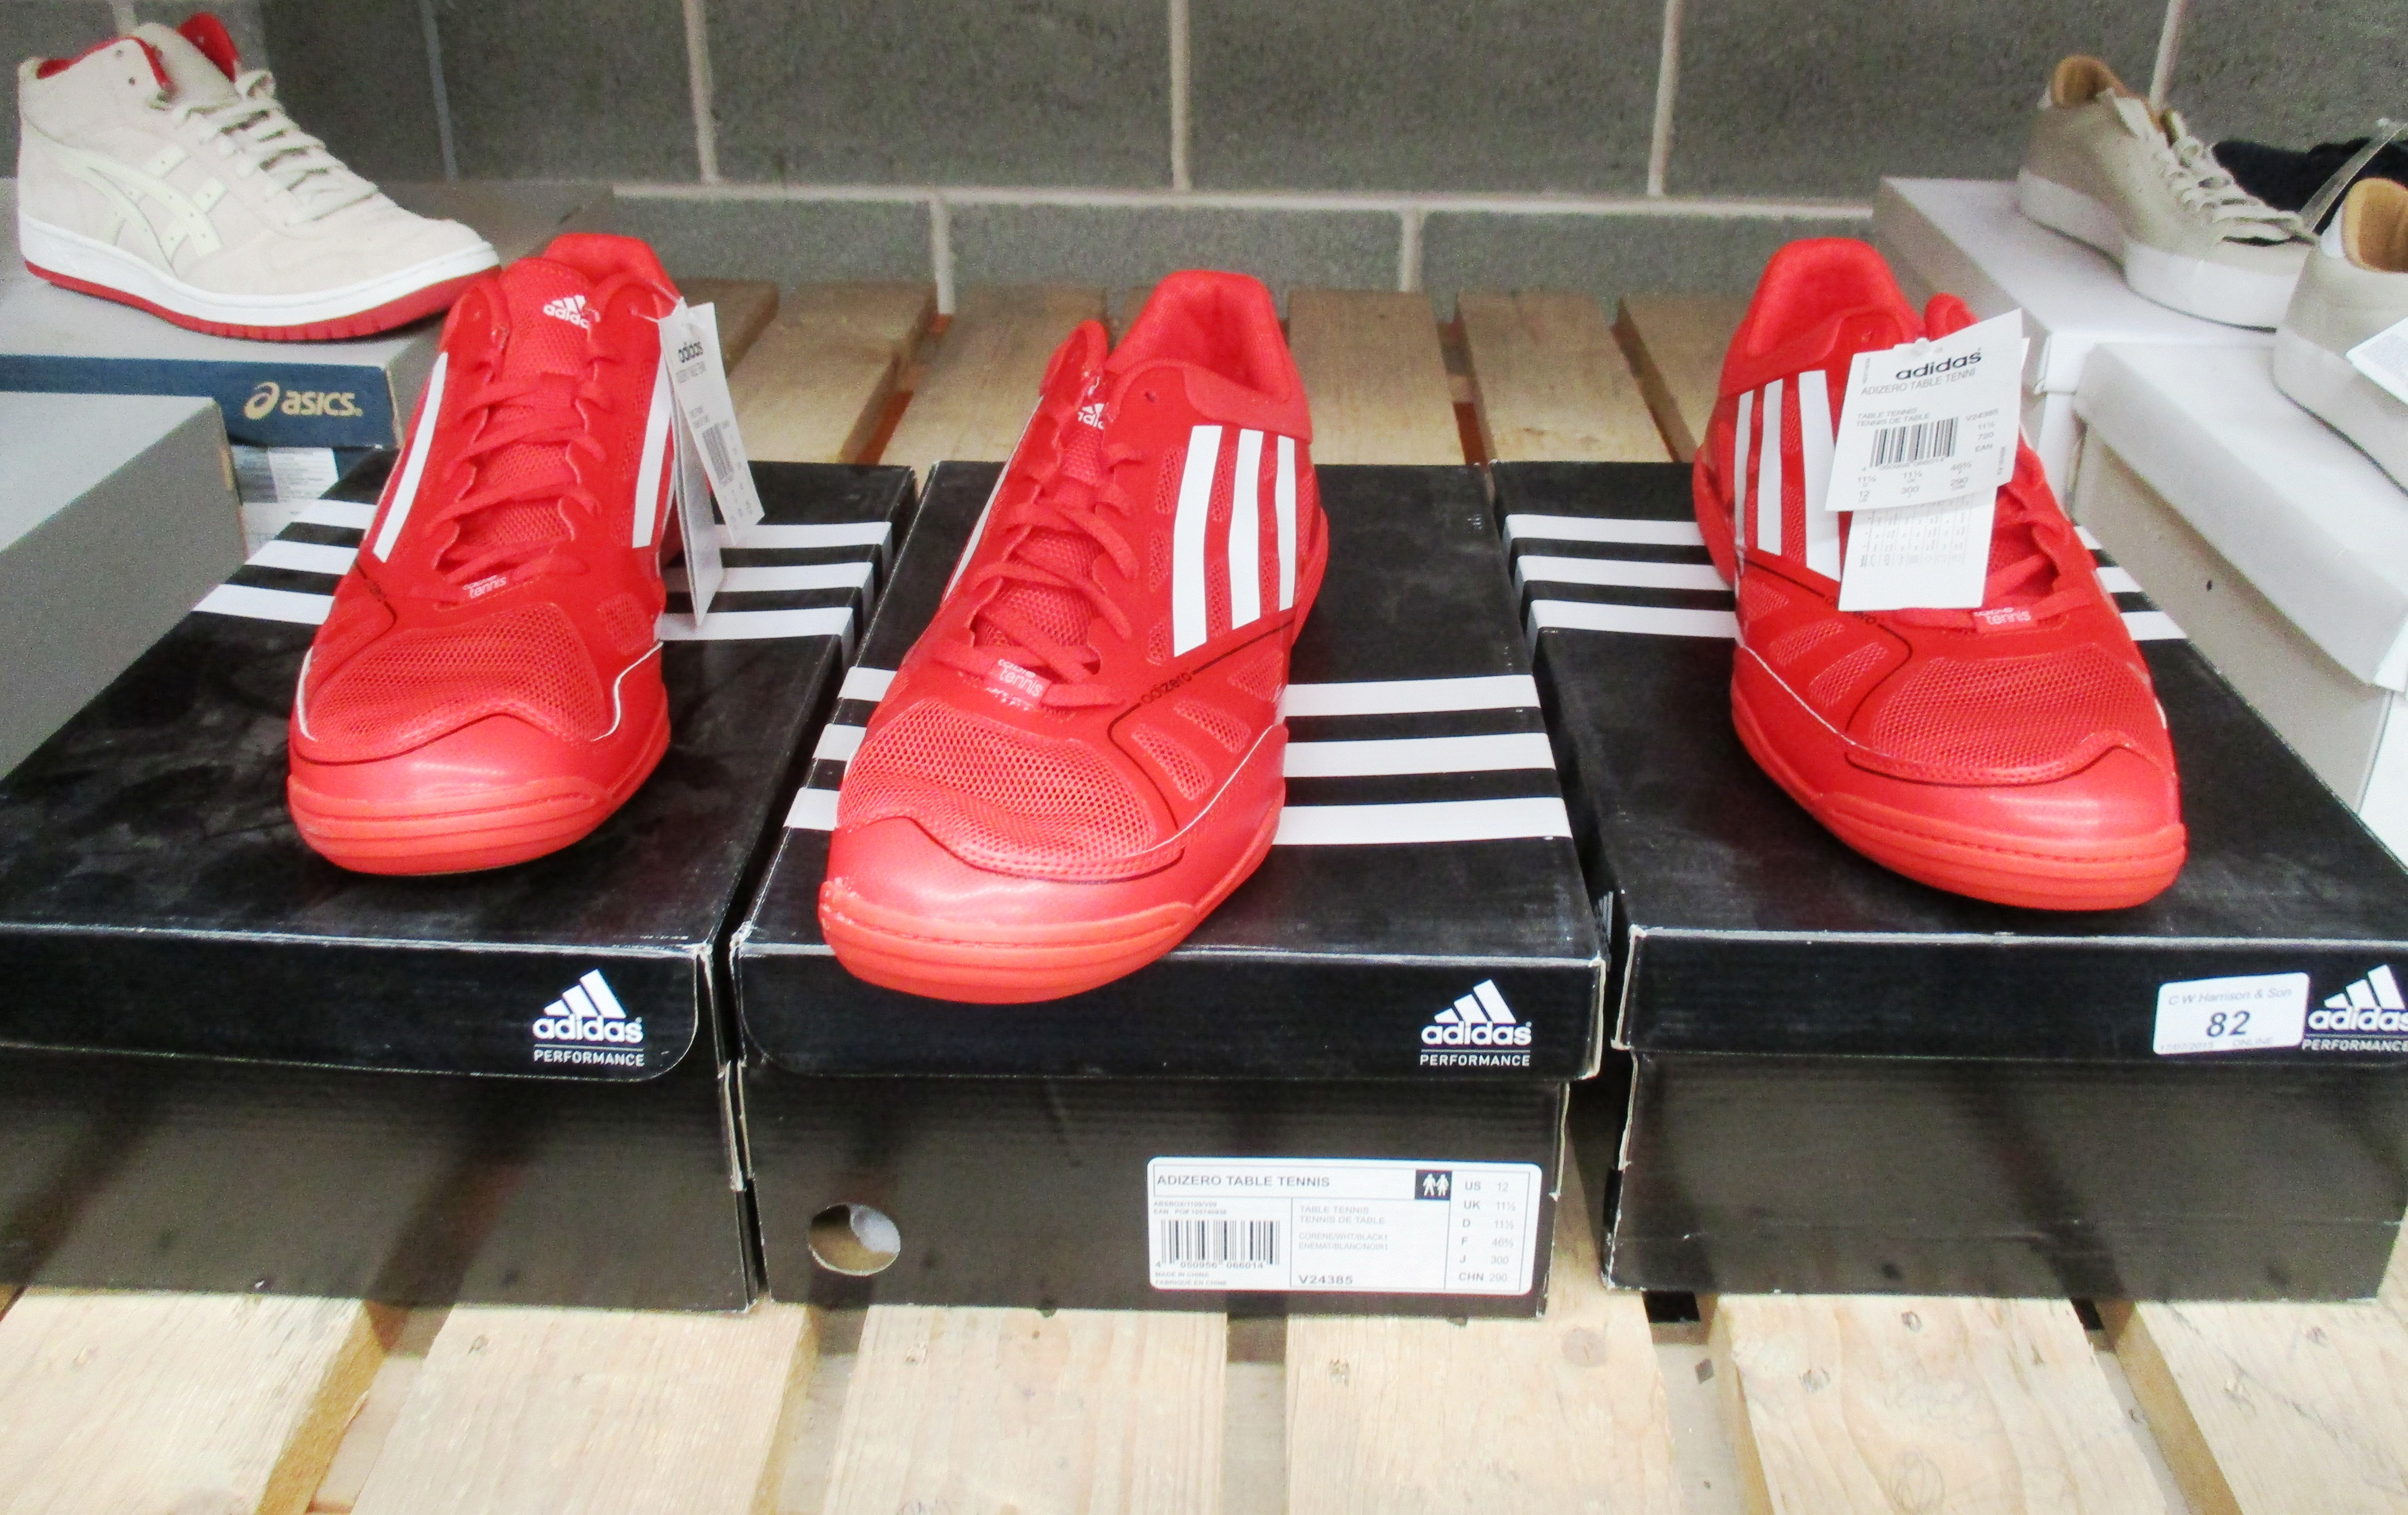 3 x pairs of Adidas Adizero table tennis shoes size 11 ½